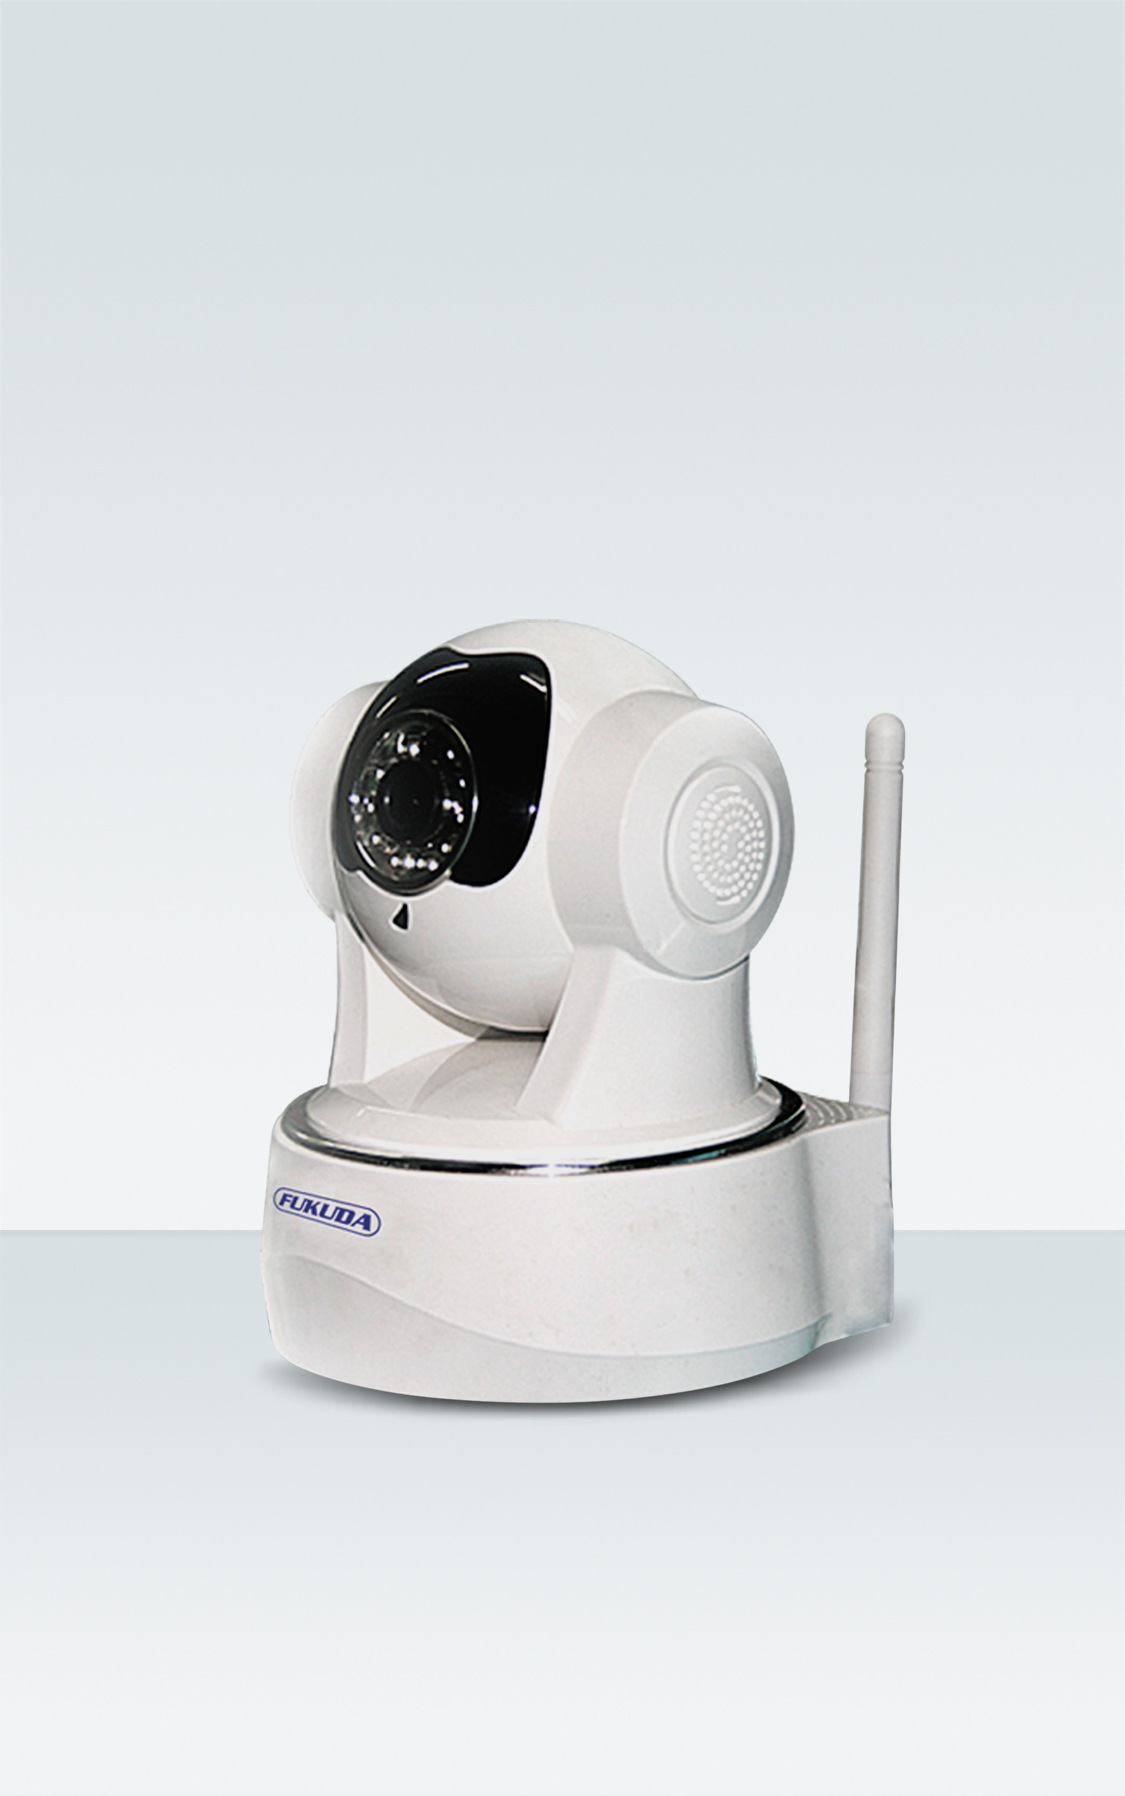 IP CAMERA (INDOOR) BUILT-IN MICROPHONE & SPEAKER